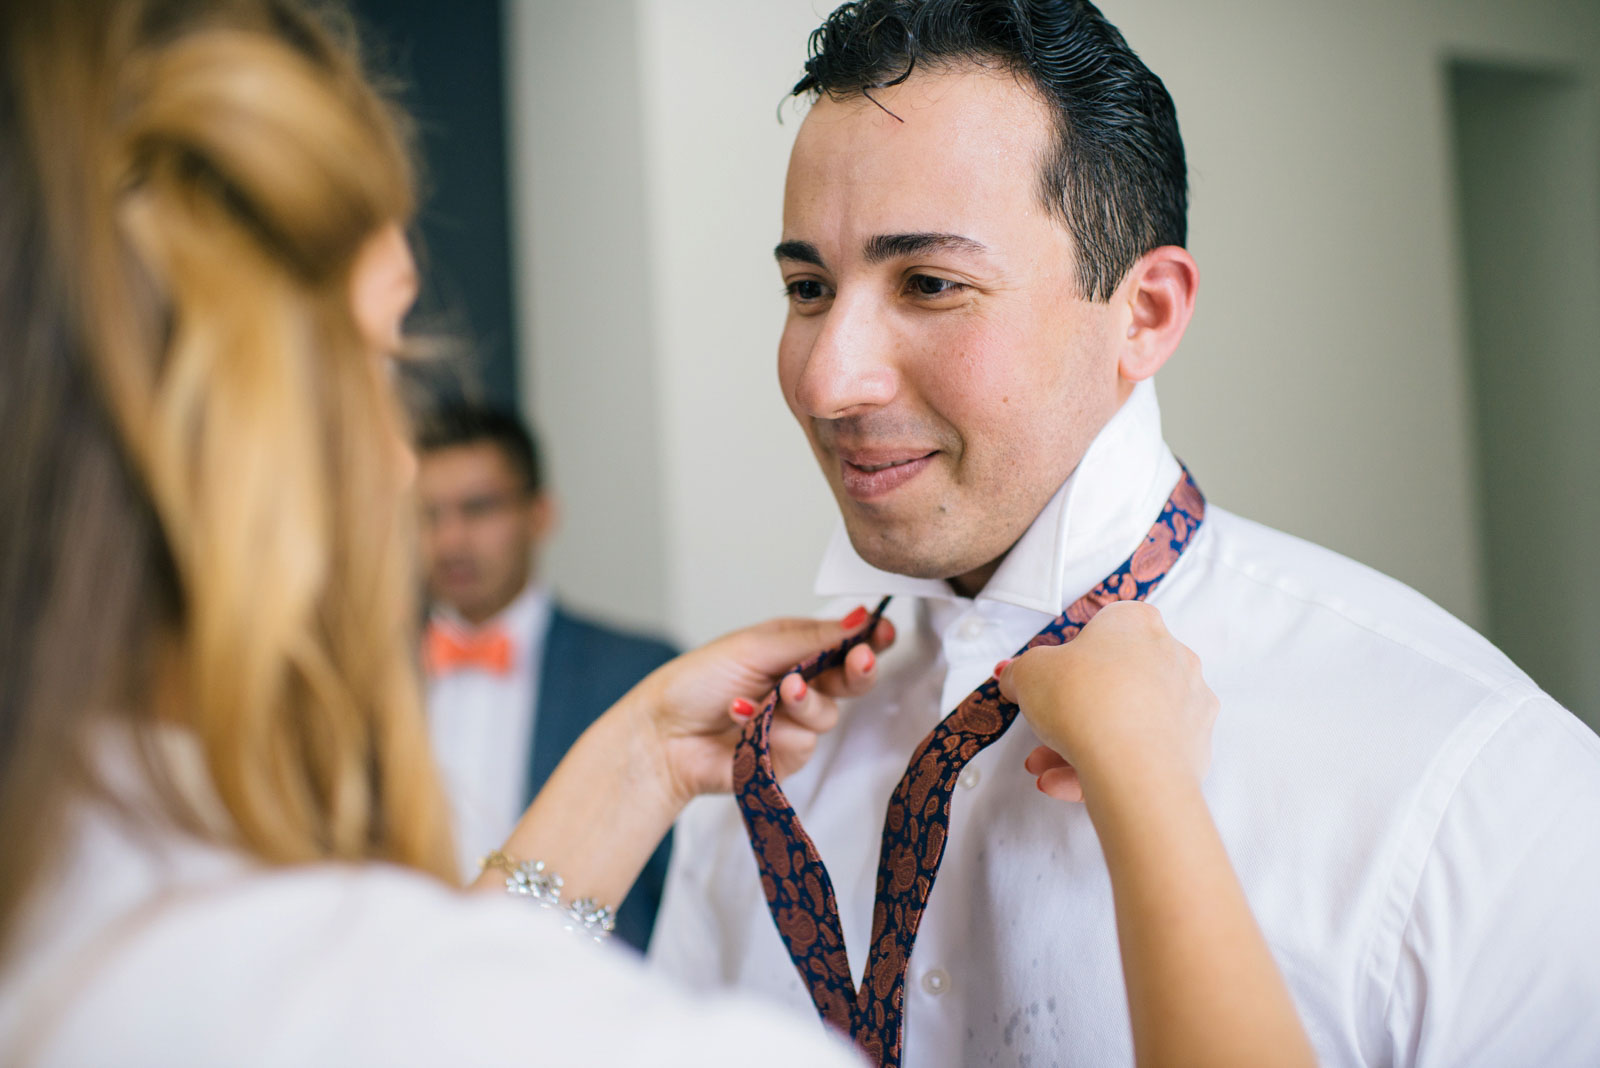 groom's friend helping groom put on vintage paisley bow tie while getting ready